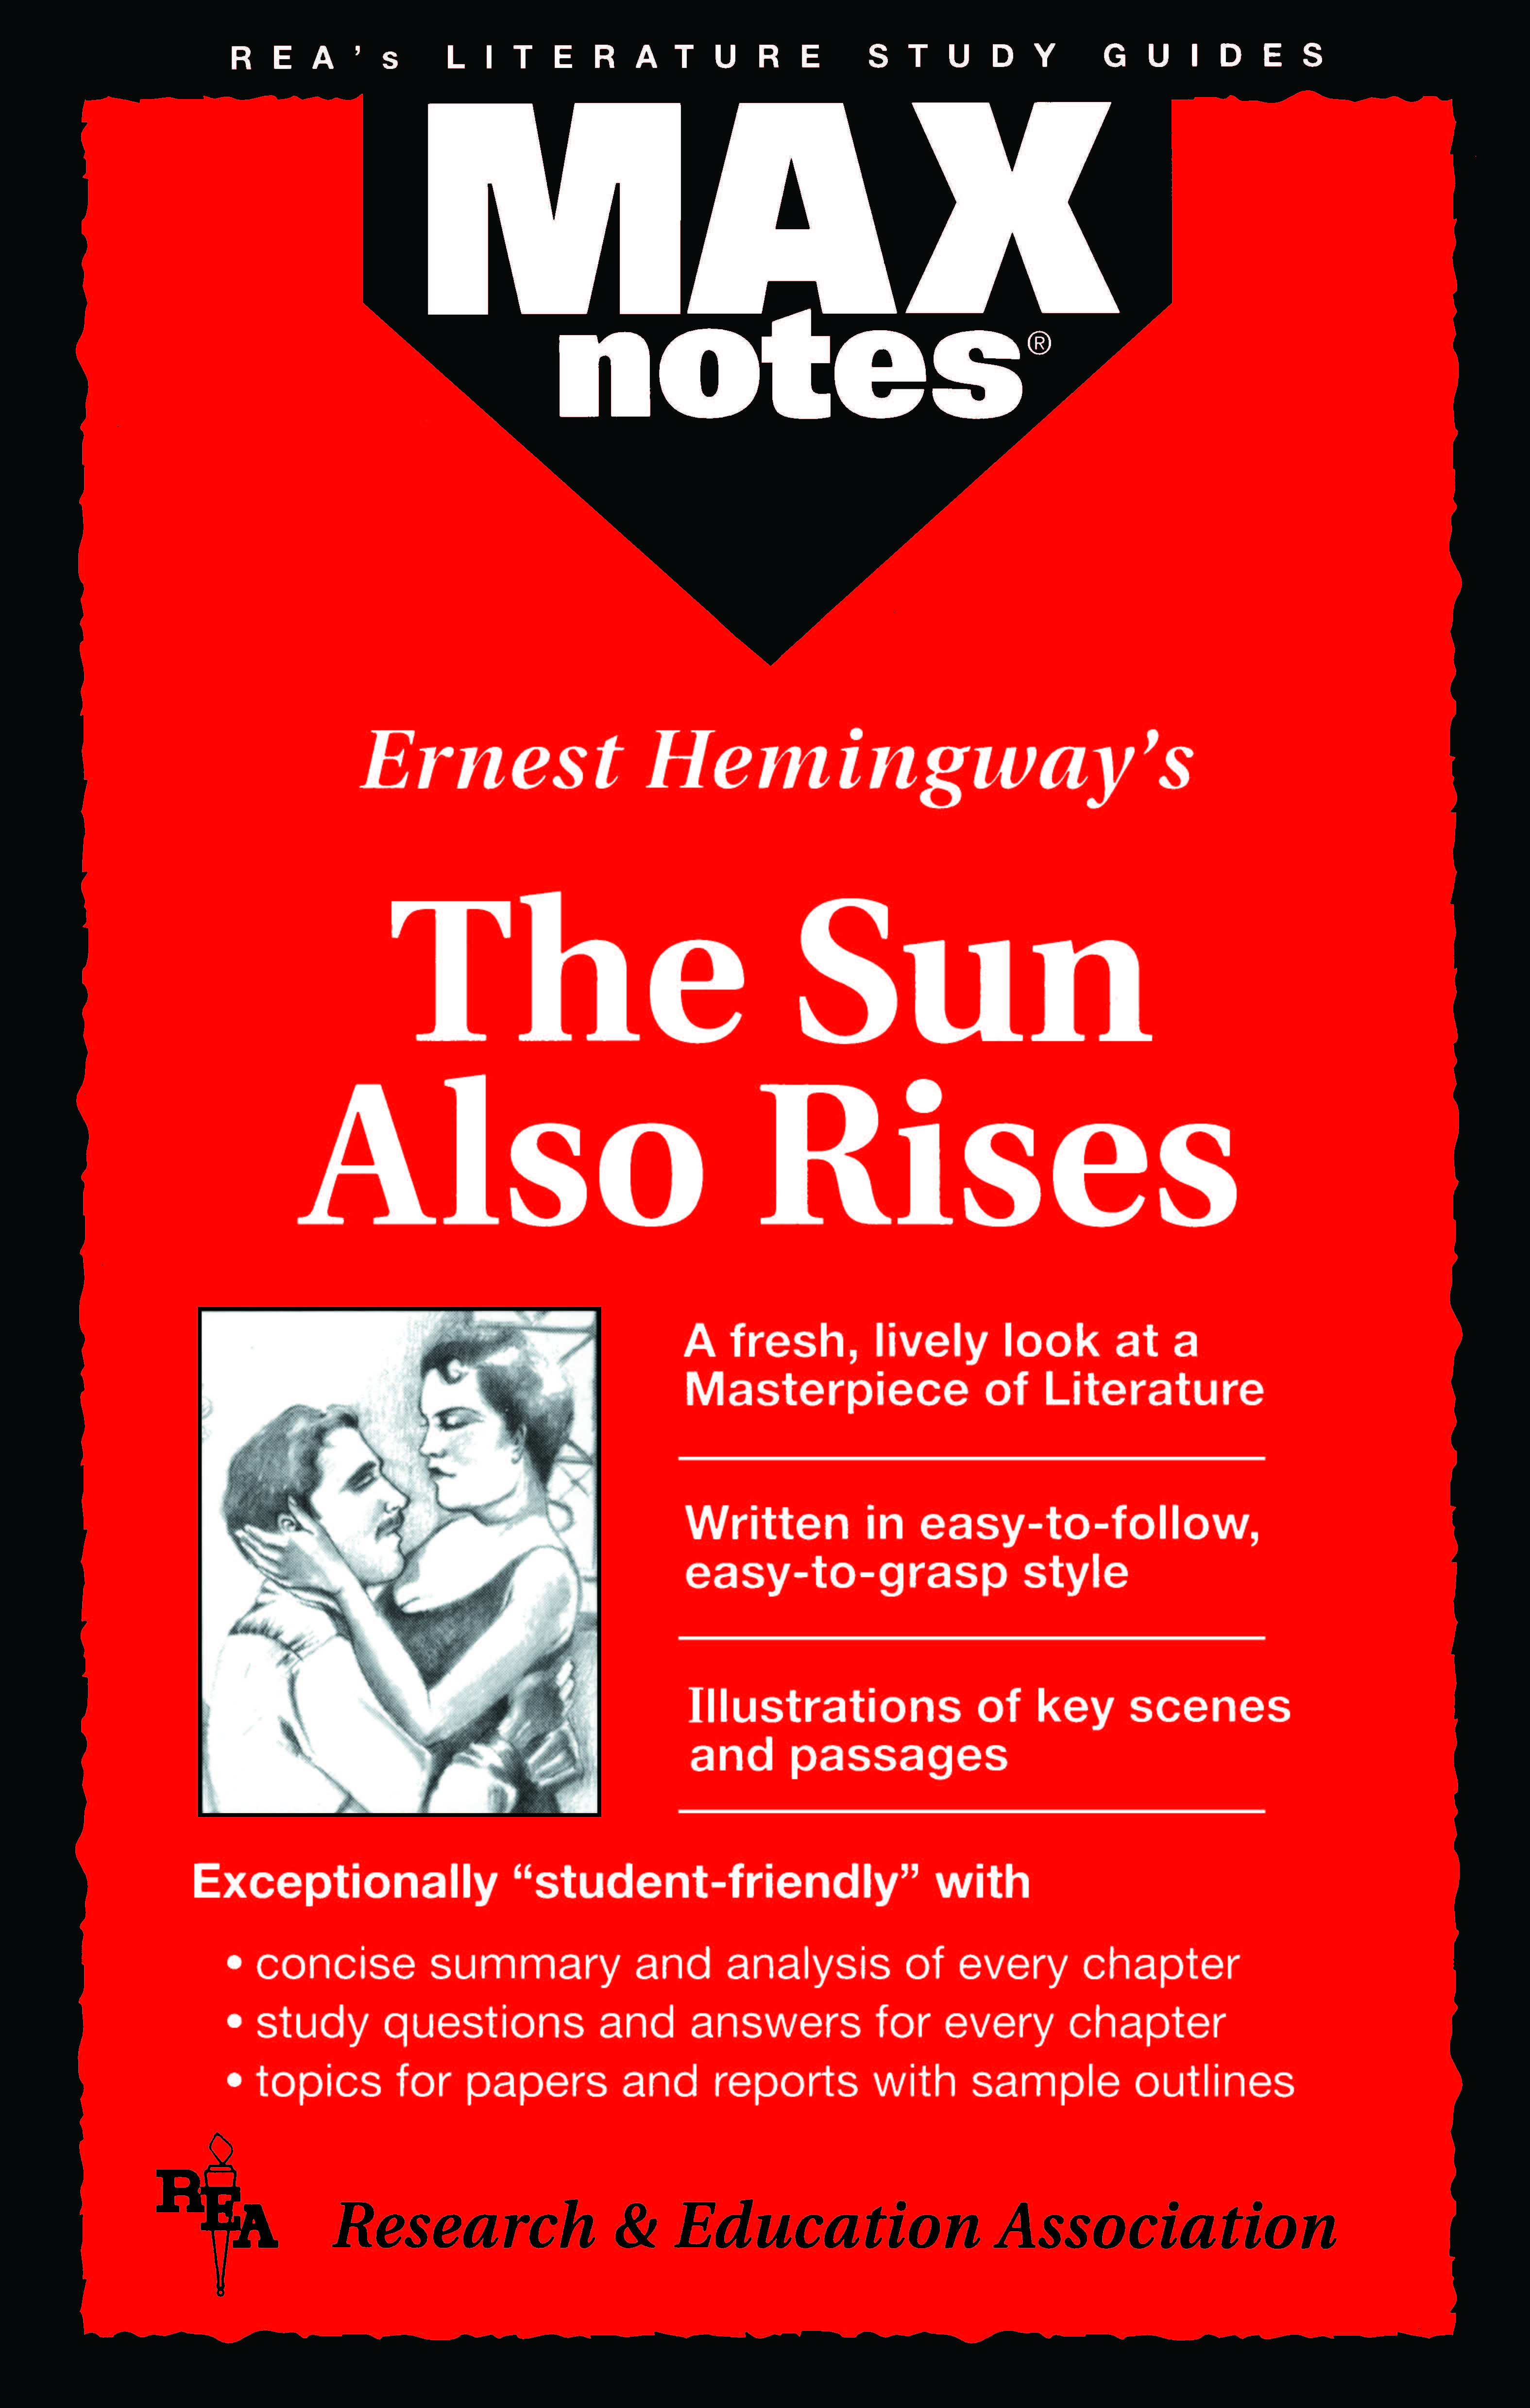 an analysis of the report the sun also rises by konstantin heiller For whom the bell tolls book report for whom the bell tolls book report bookreport konstantin heiller the sun also rises there is no flabbergusting plot in this book as it doesn't contain twists, intrigues, or goals for any of the characters and the dialogue is the only thing that moves the reader through the book.